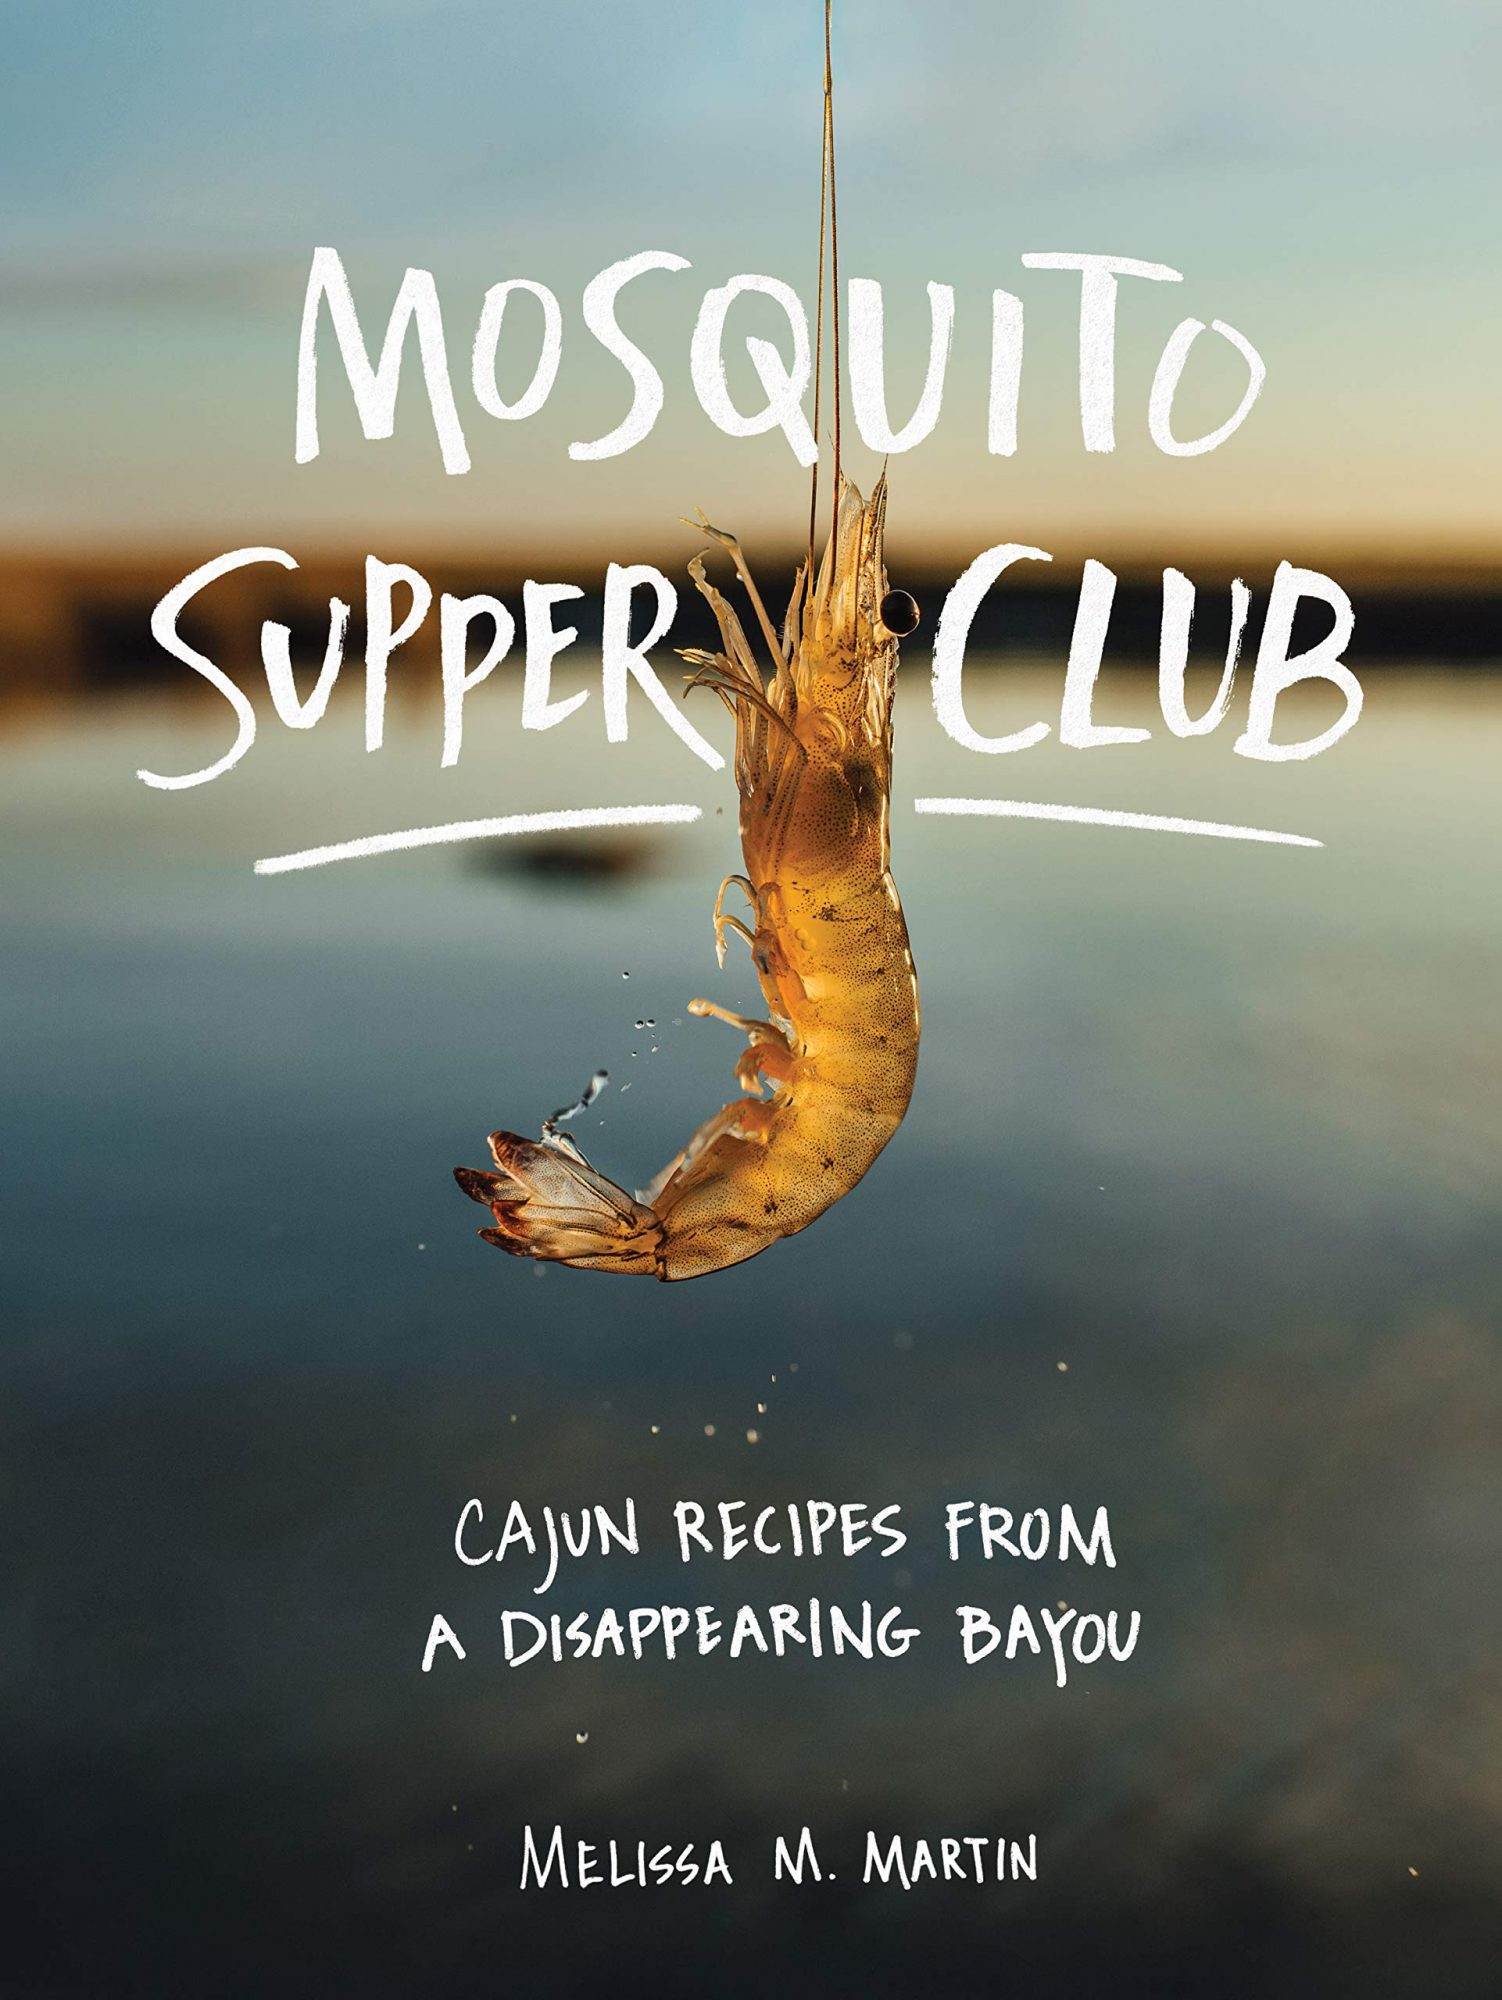 book cover for Mosquito Supper Club: Cajun Recipes from a Disappearing Bayou